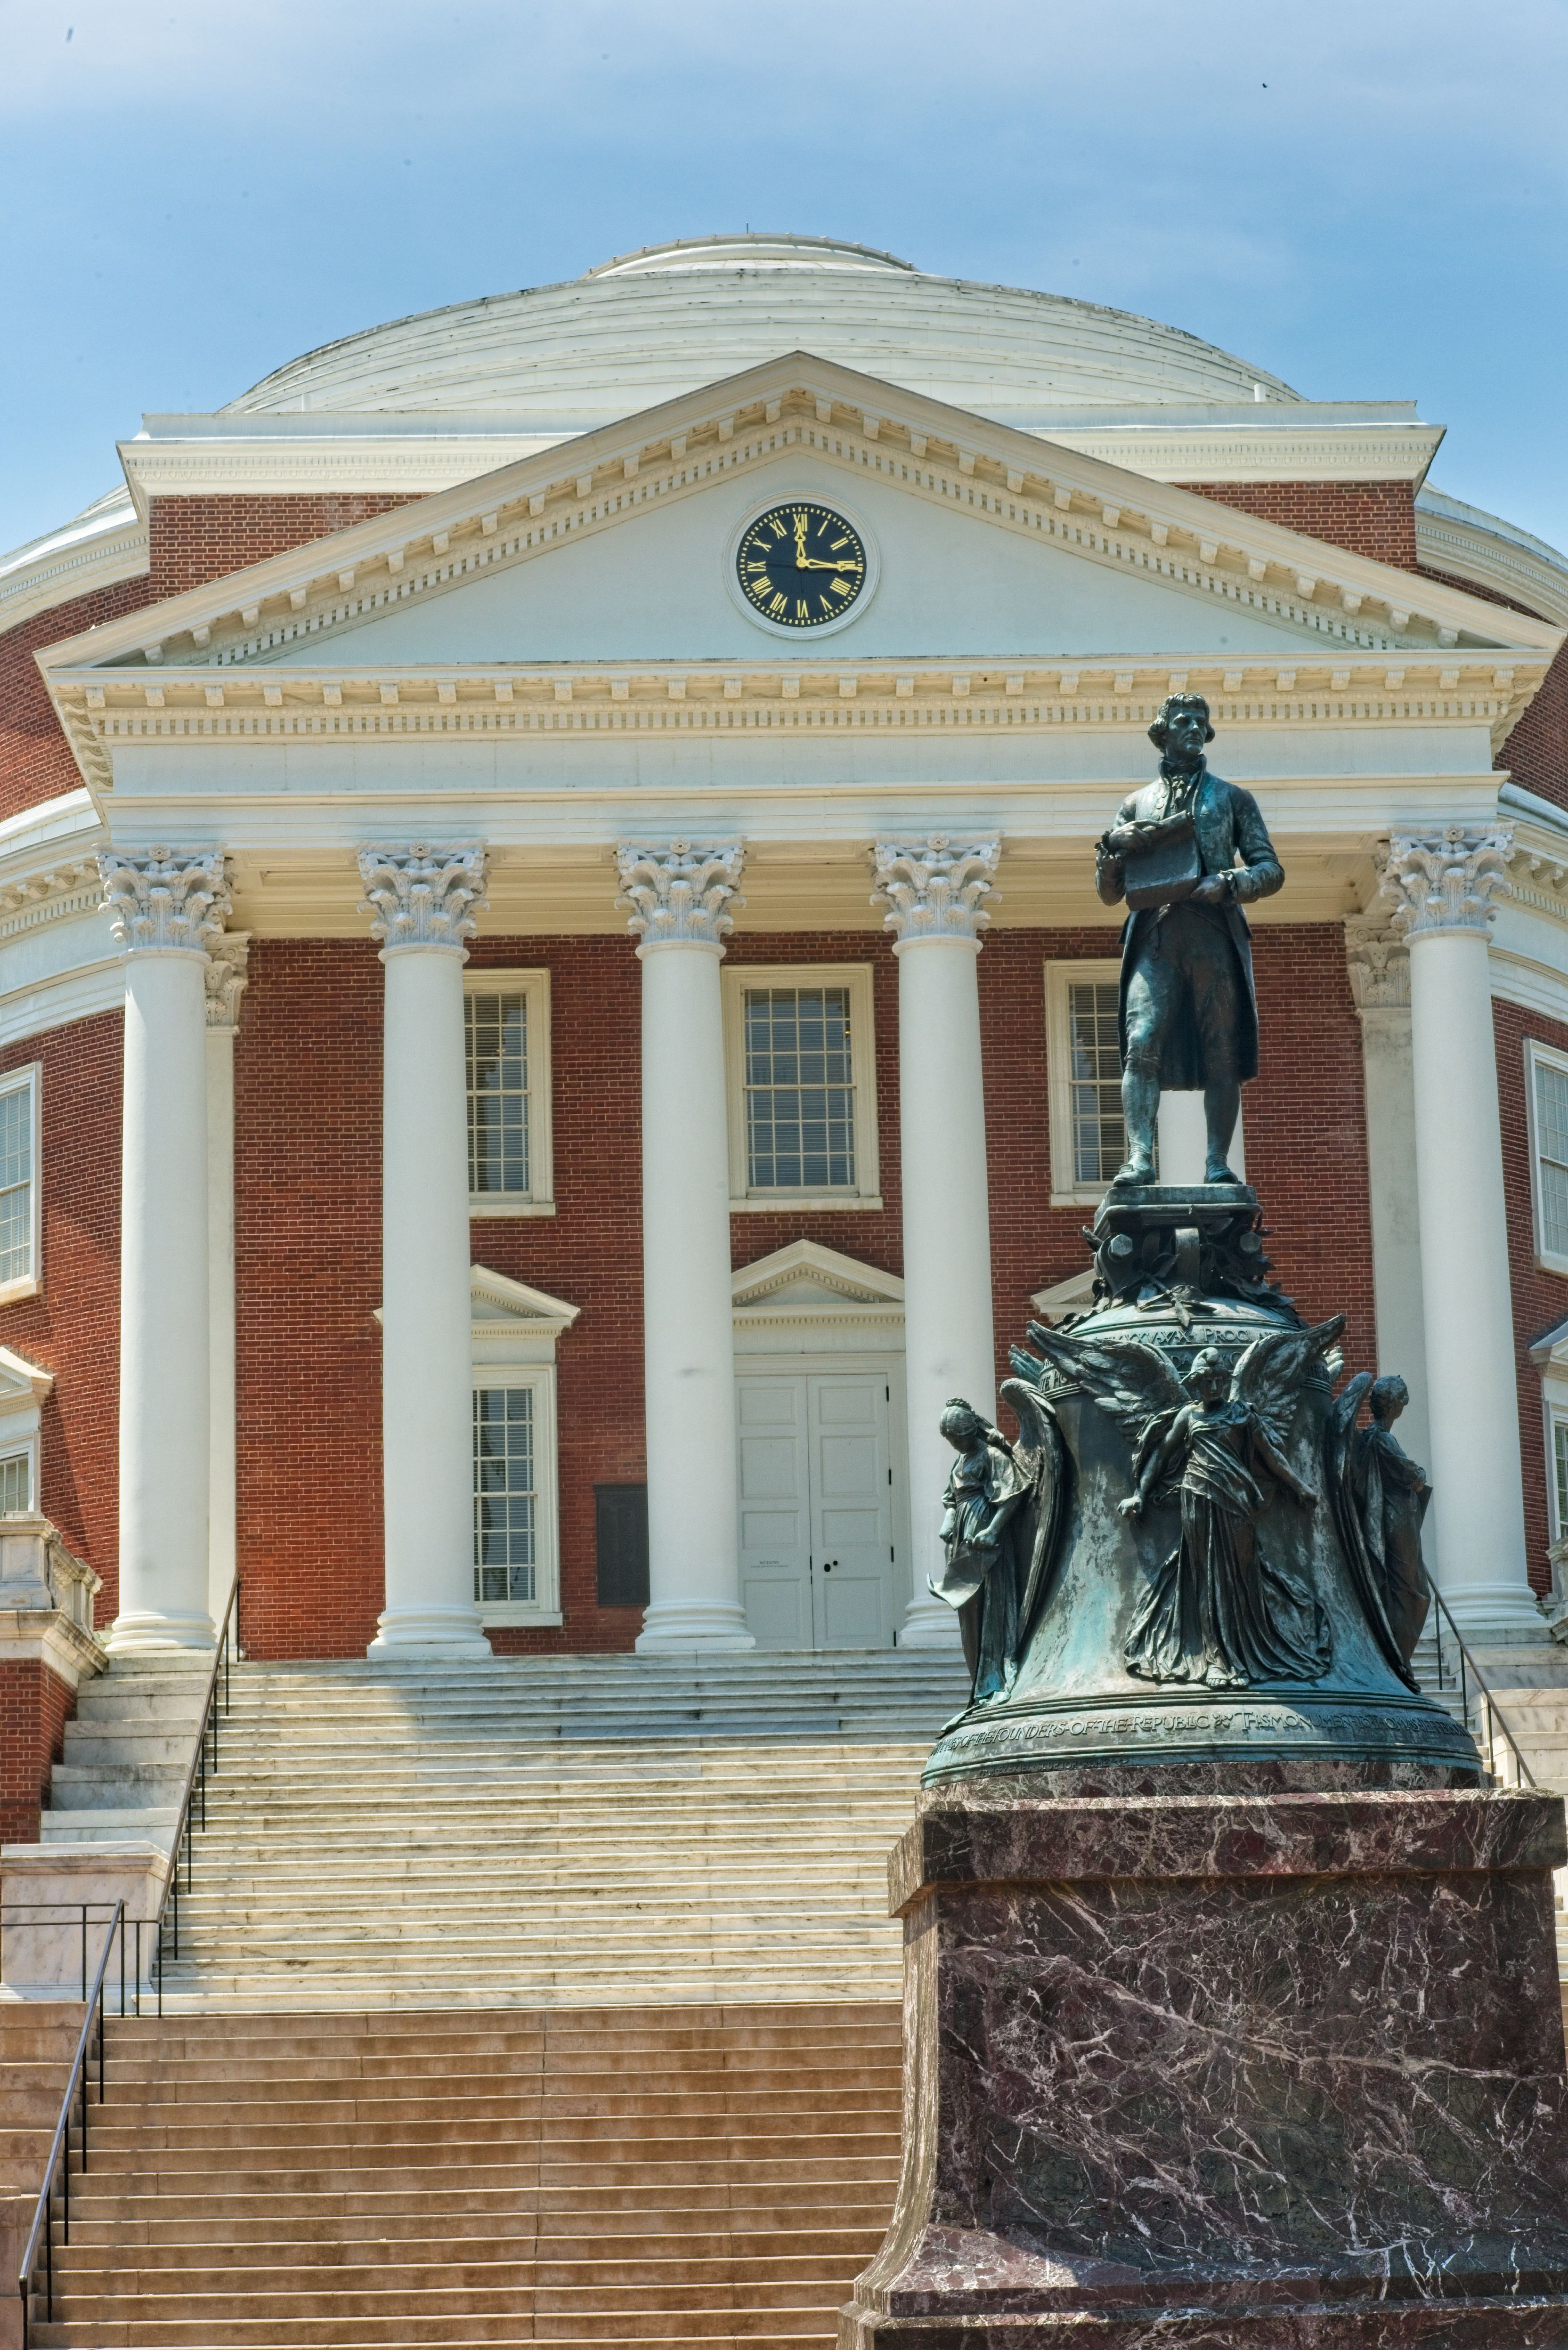 Statue of Thomas Jefferson in front of The Rotunda on the campus of the University of Virginia, Charlottesville, Virginia